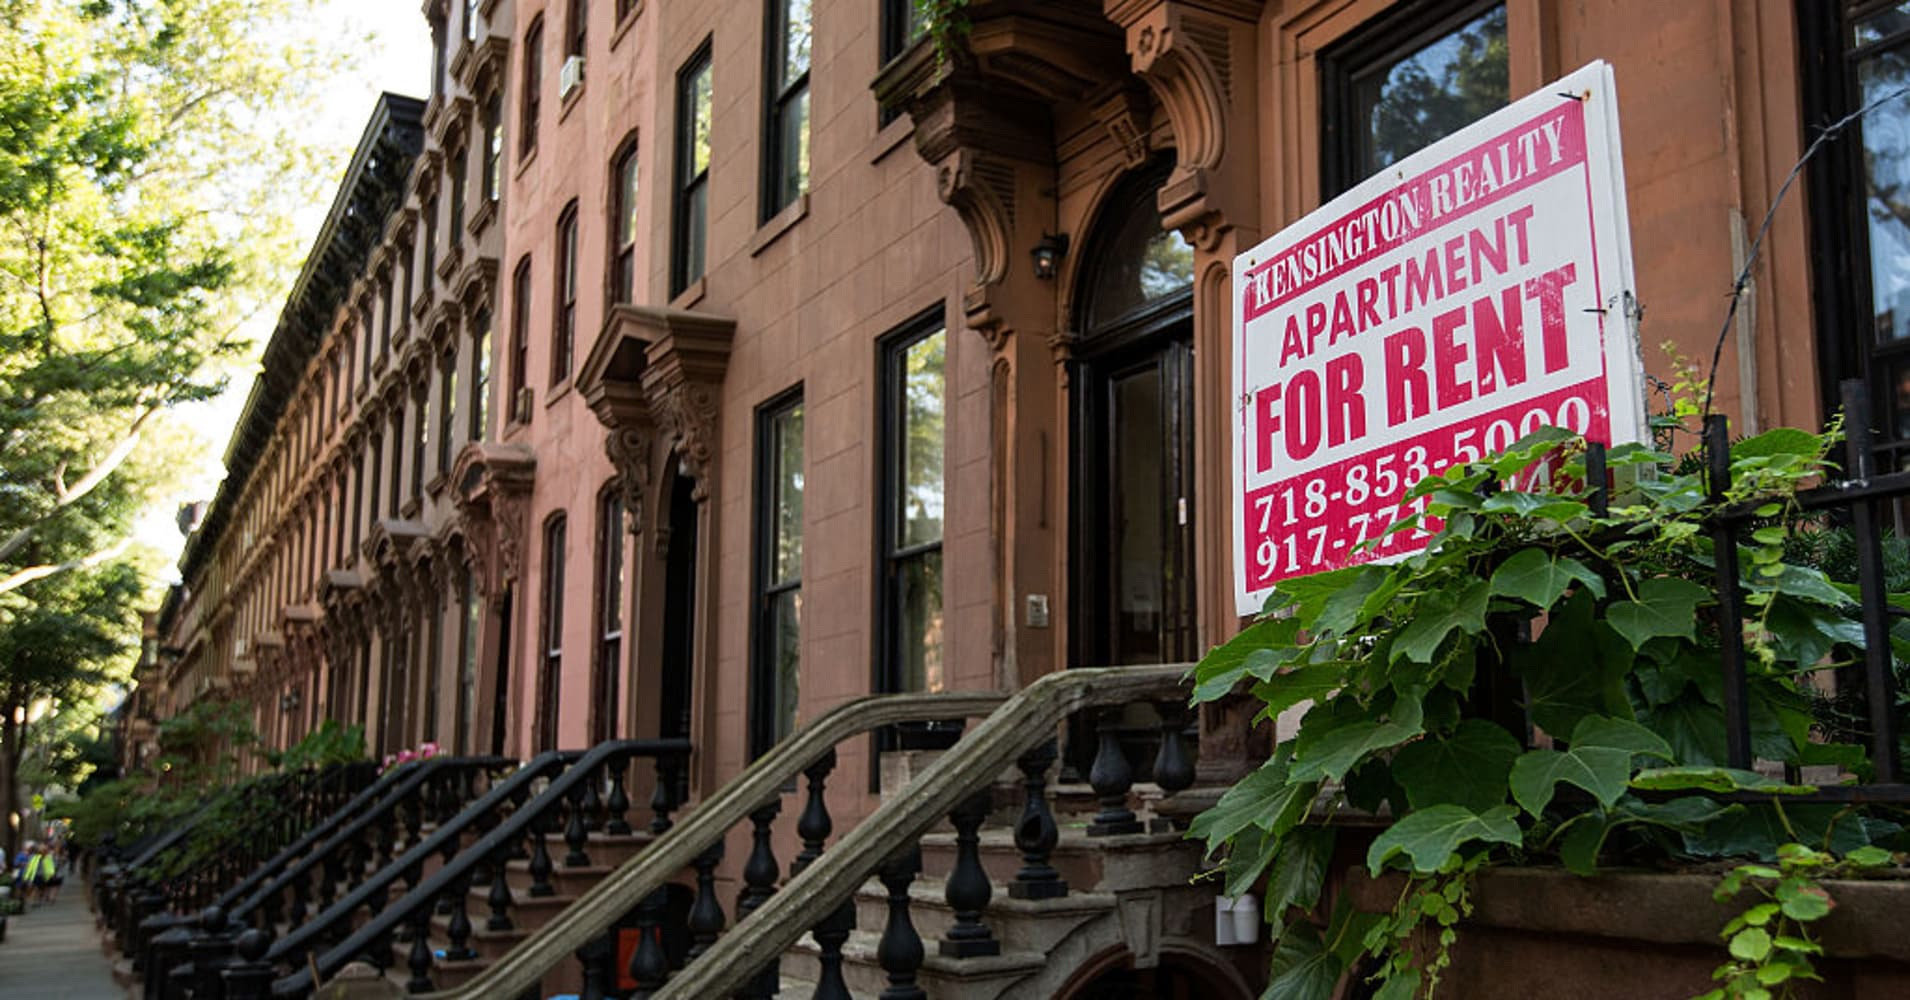 A sign advertises an apartment for rent along a row of brownstone townhouses on June 24, 2016 in the Brooklyn borough of New York City.